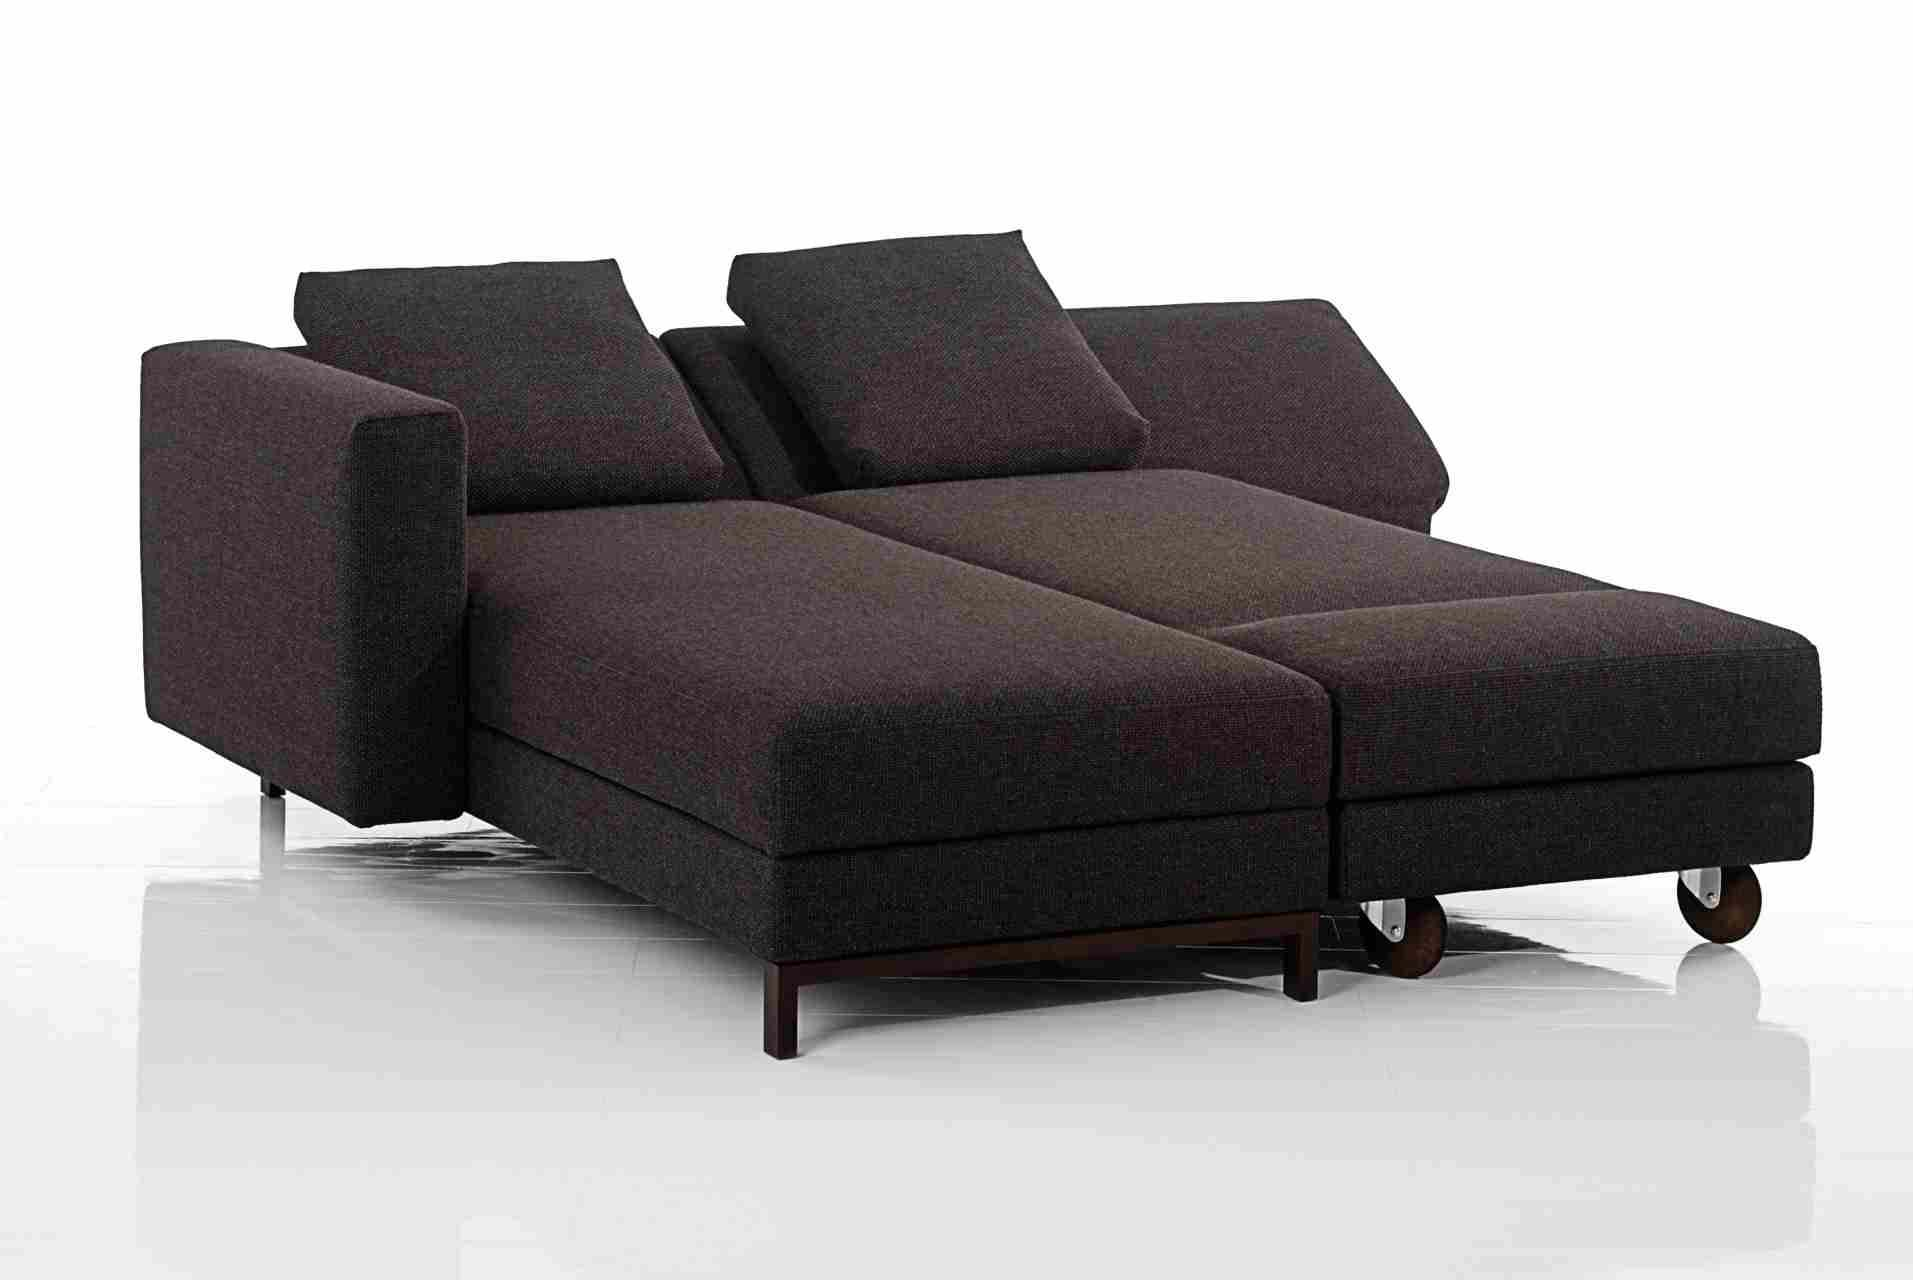 sofa four two biom bel genske. Black Bedroom Furniture Sets. Home Design Ideas